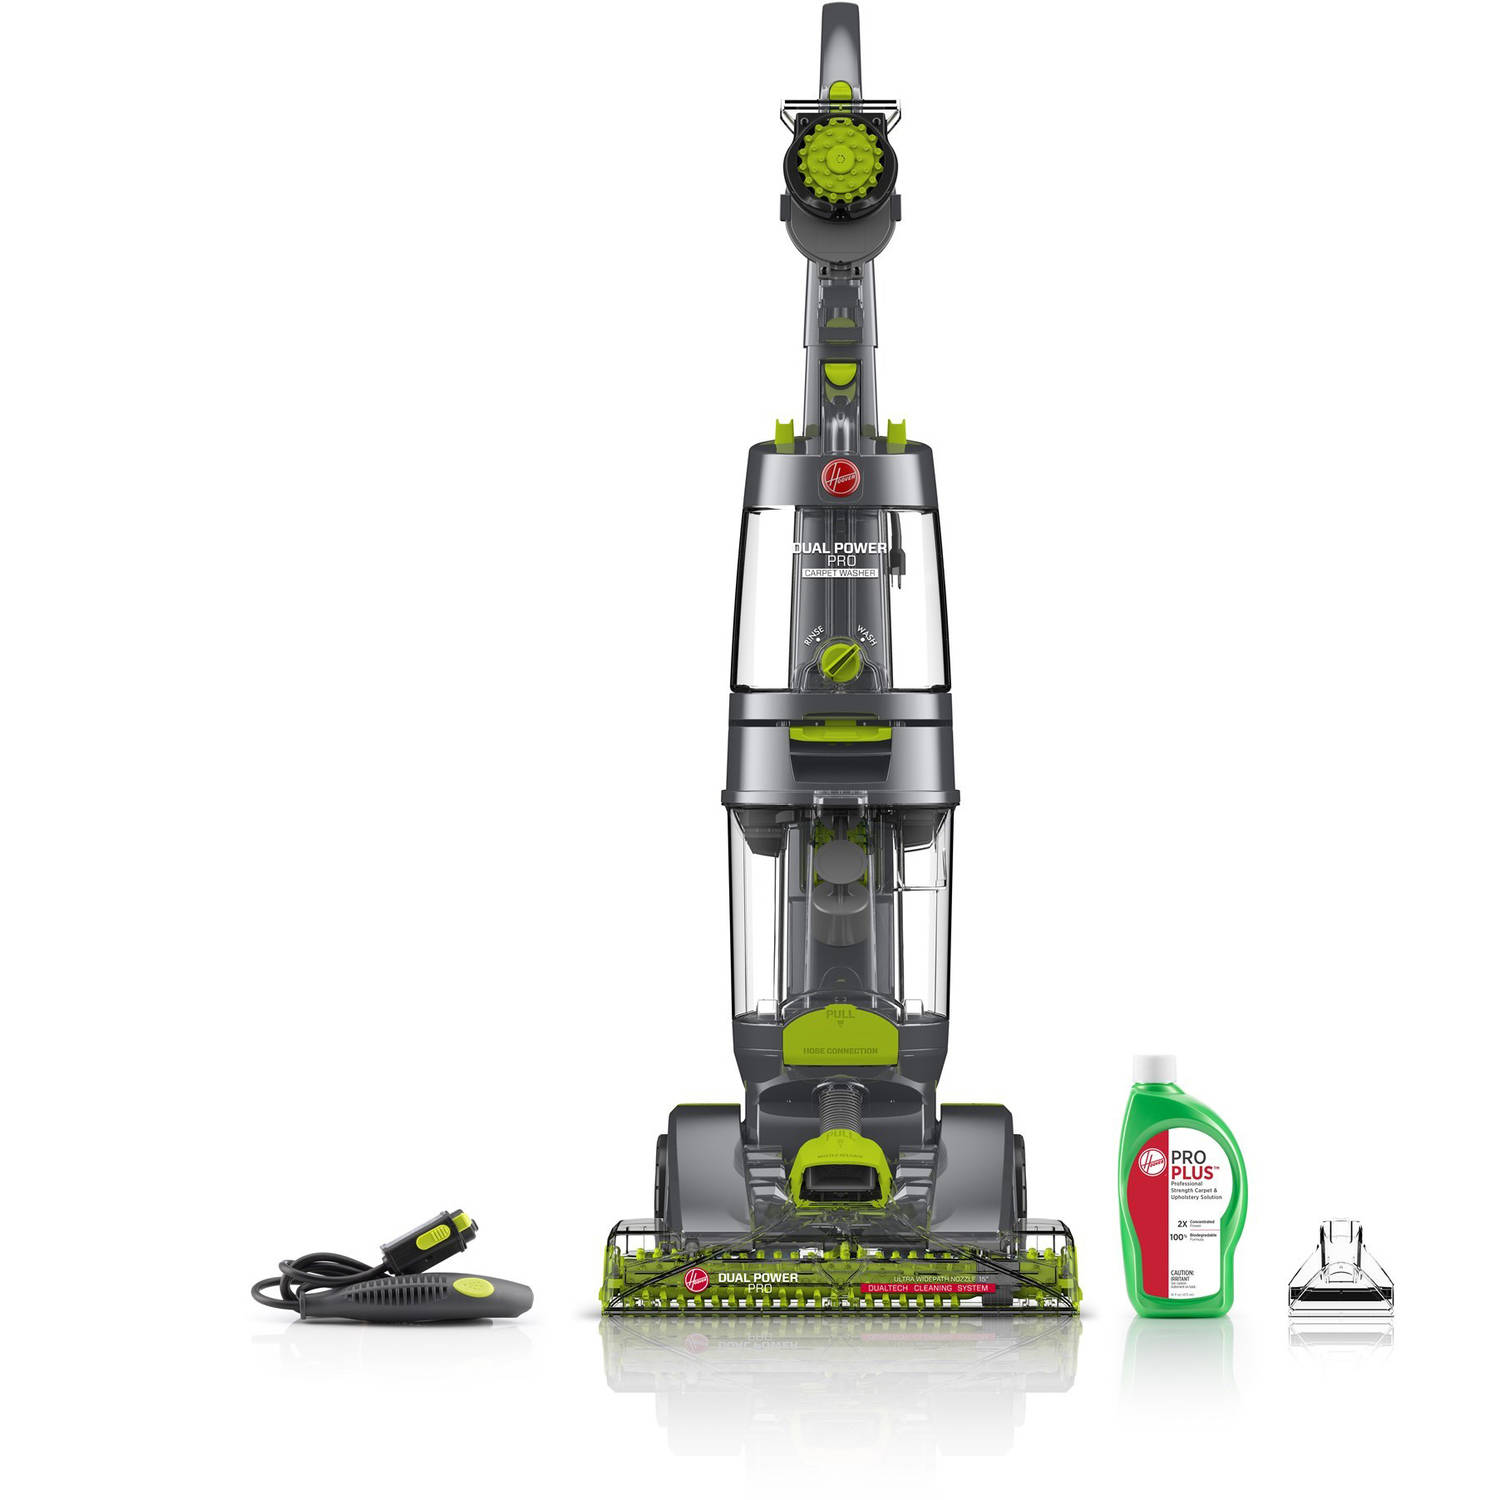 Hoover Dual Power Pro, Pet Premium Carpet Cleaner, FH51300NC